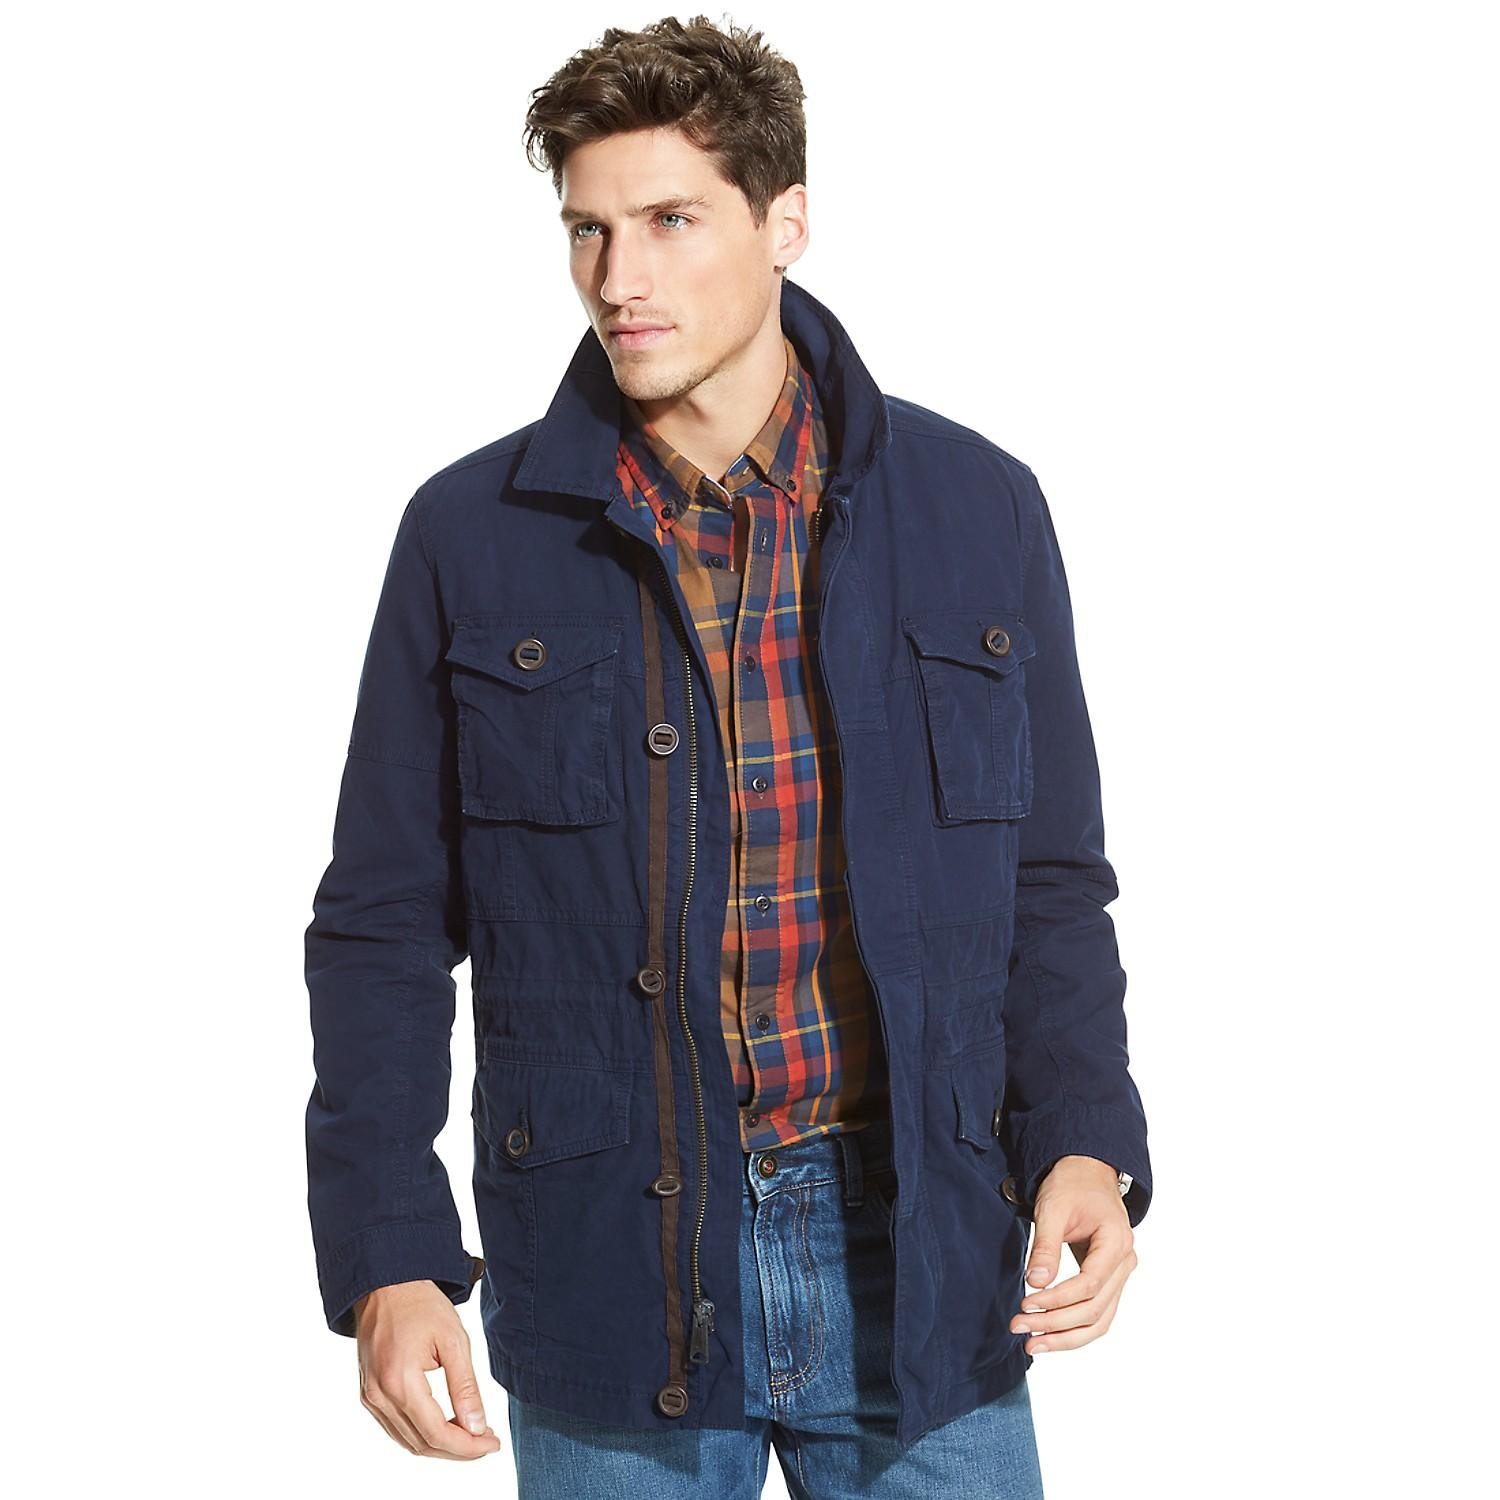 Up to 90% Off Select Men's Clothing on Clearance@ Tommy Hilfiger